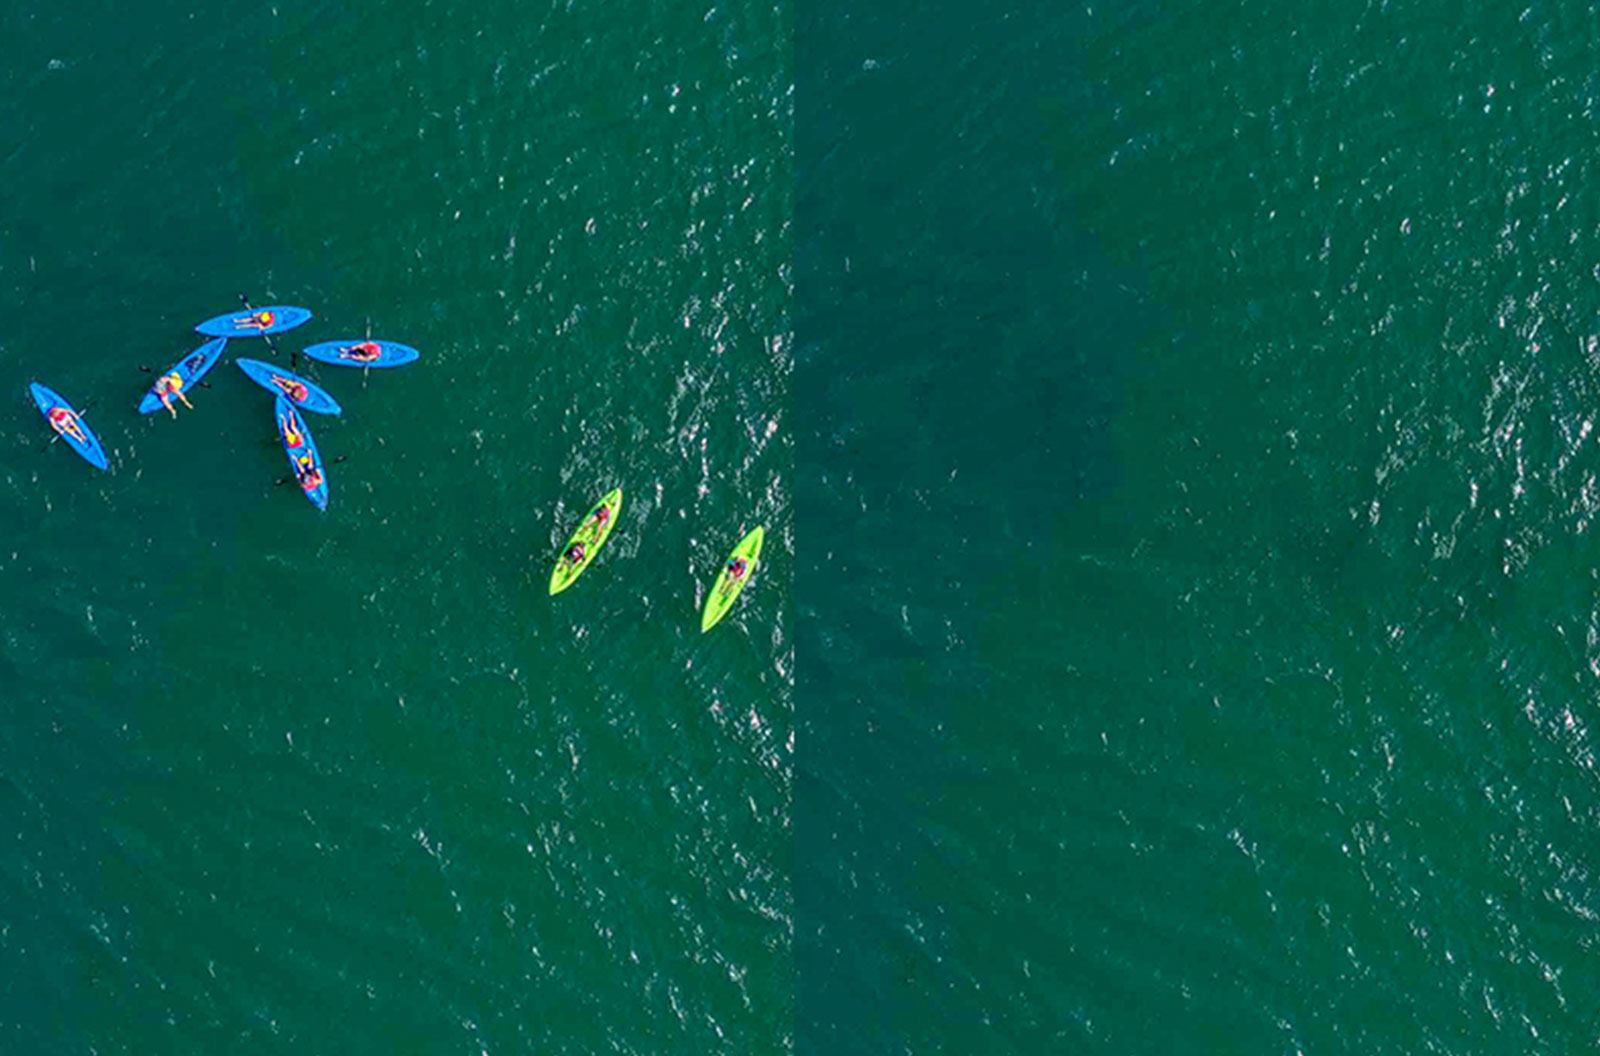 Example of a photo where spot cleaning is necessary to remove people on kayaks from the image